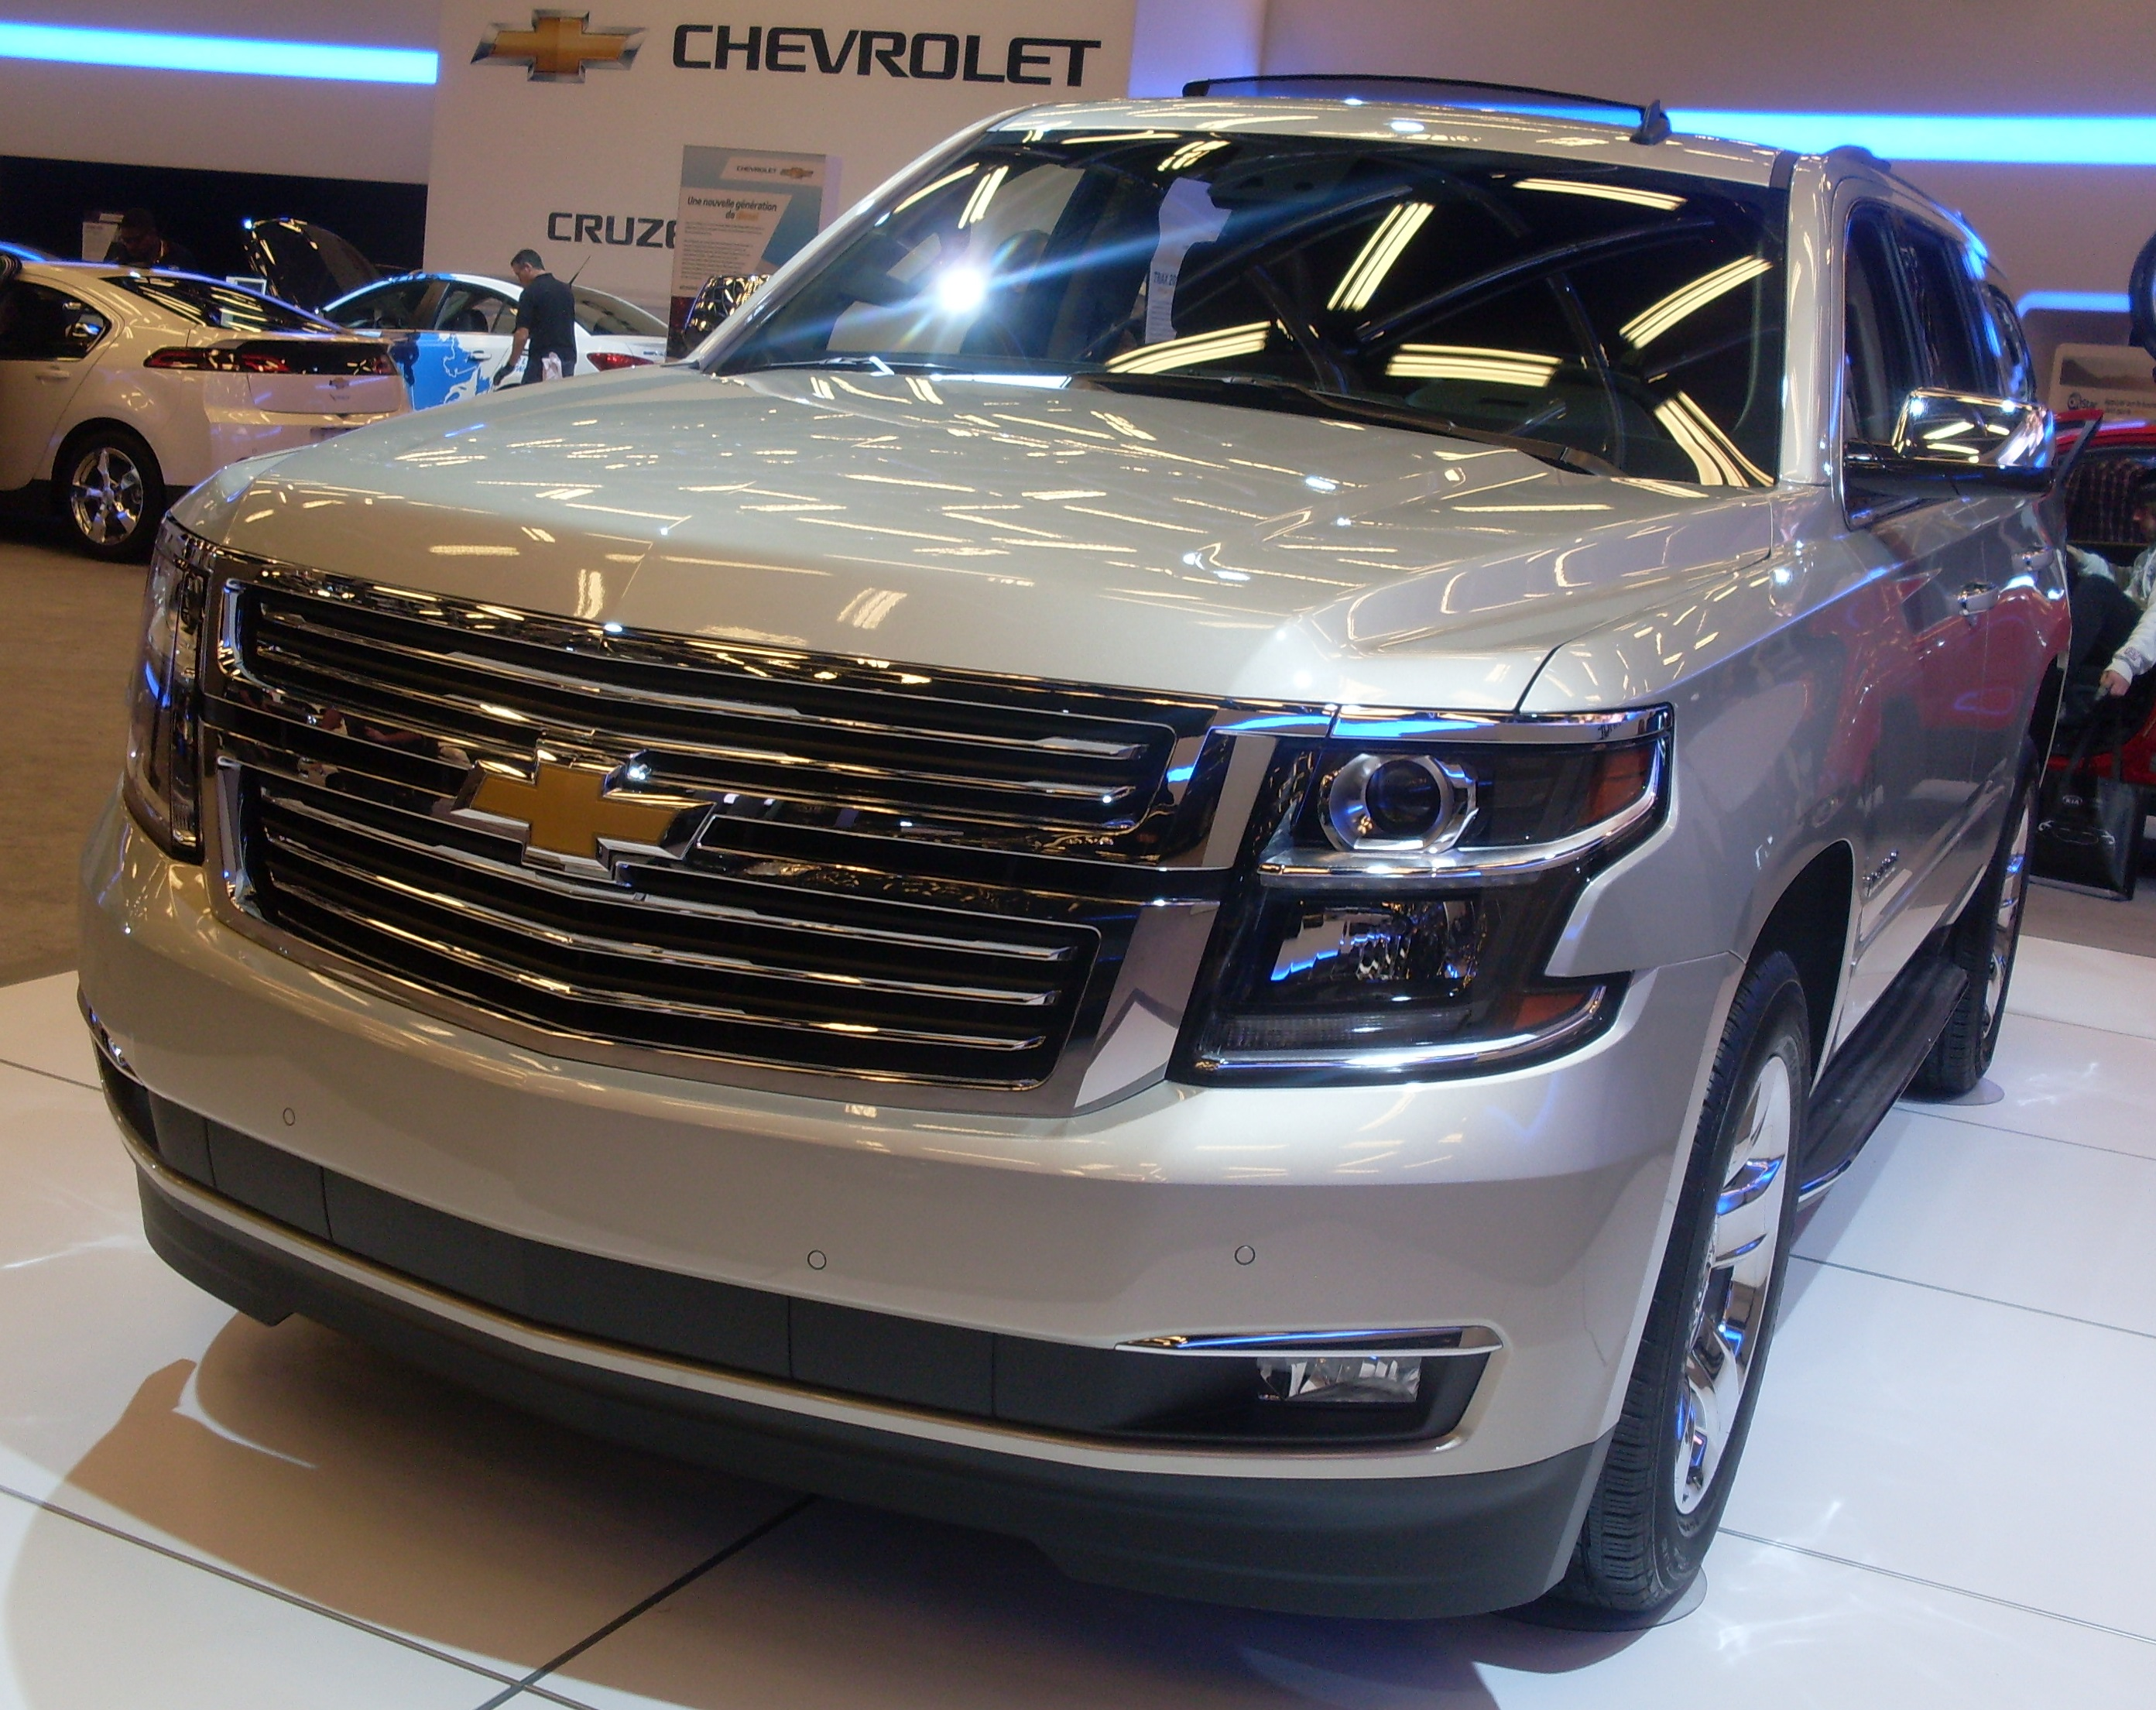 File:'15 Chevrolet Tahoe (MIAS '14).JPG - Wikimedia Commons